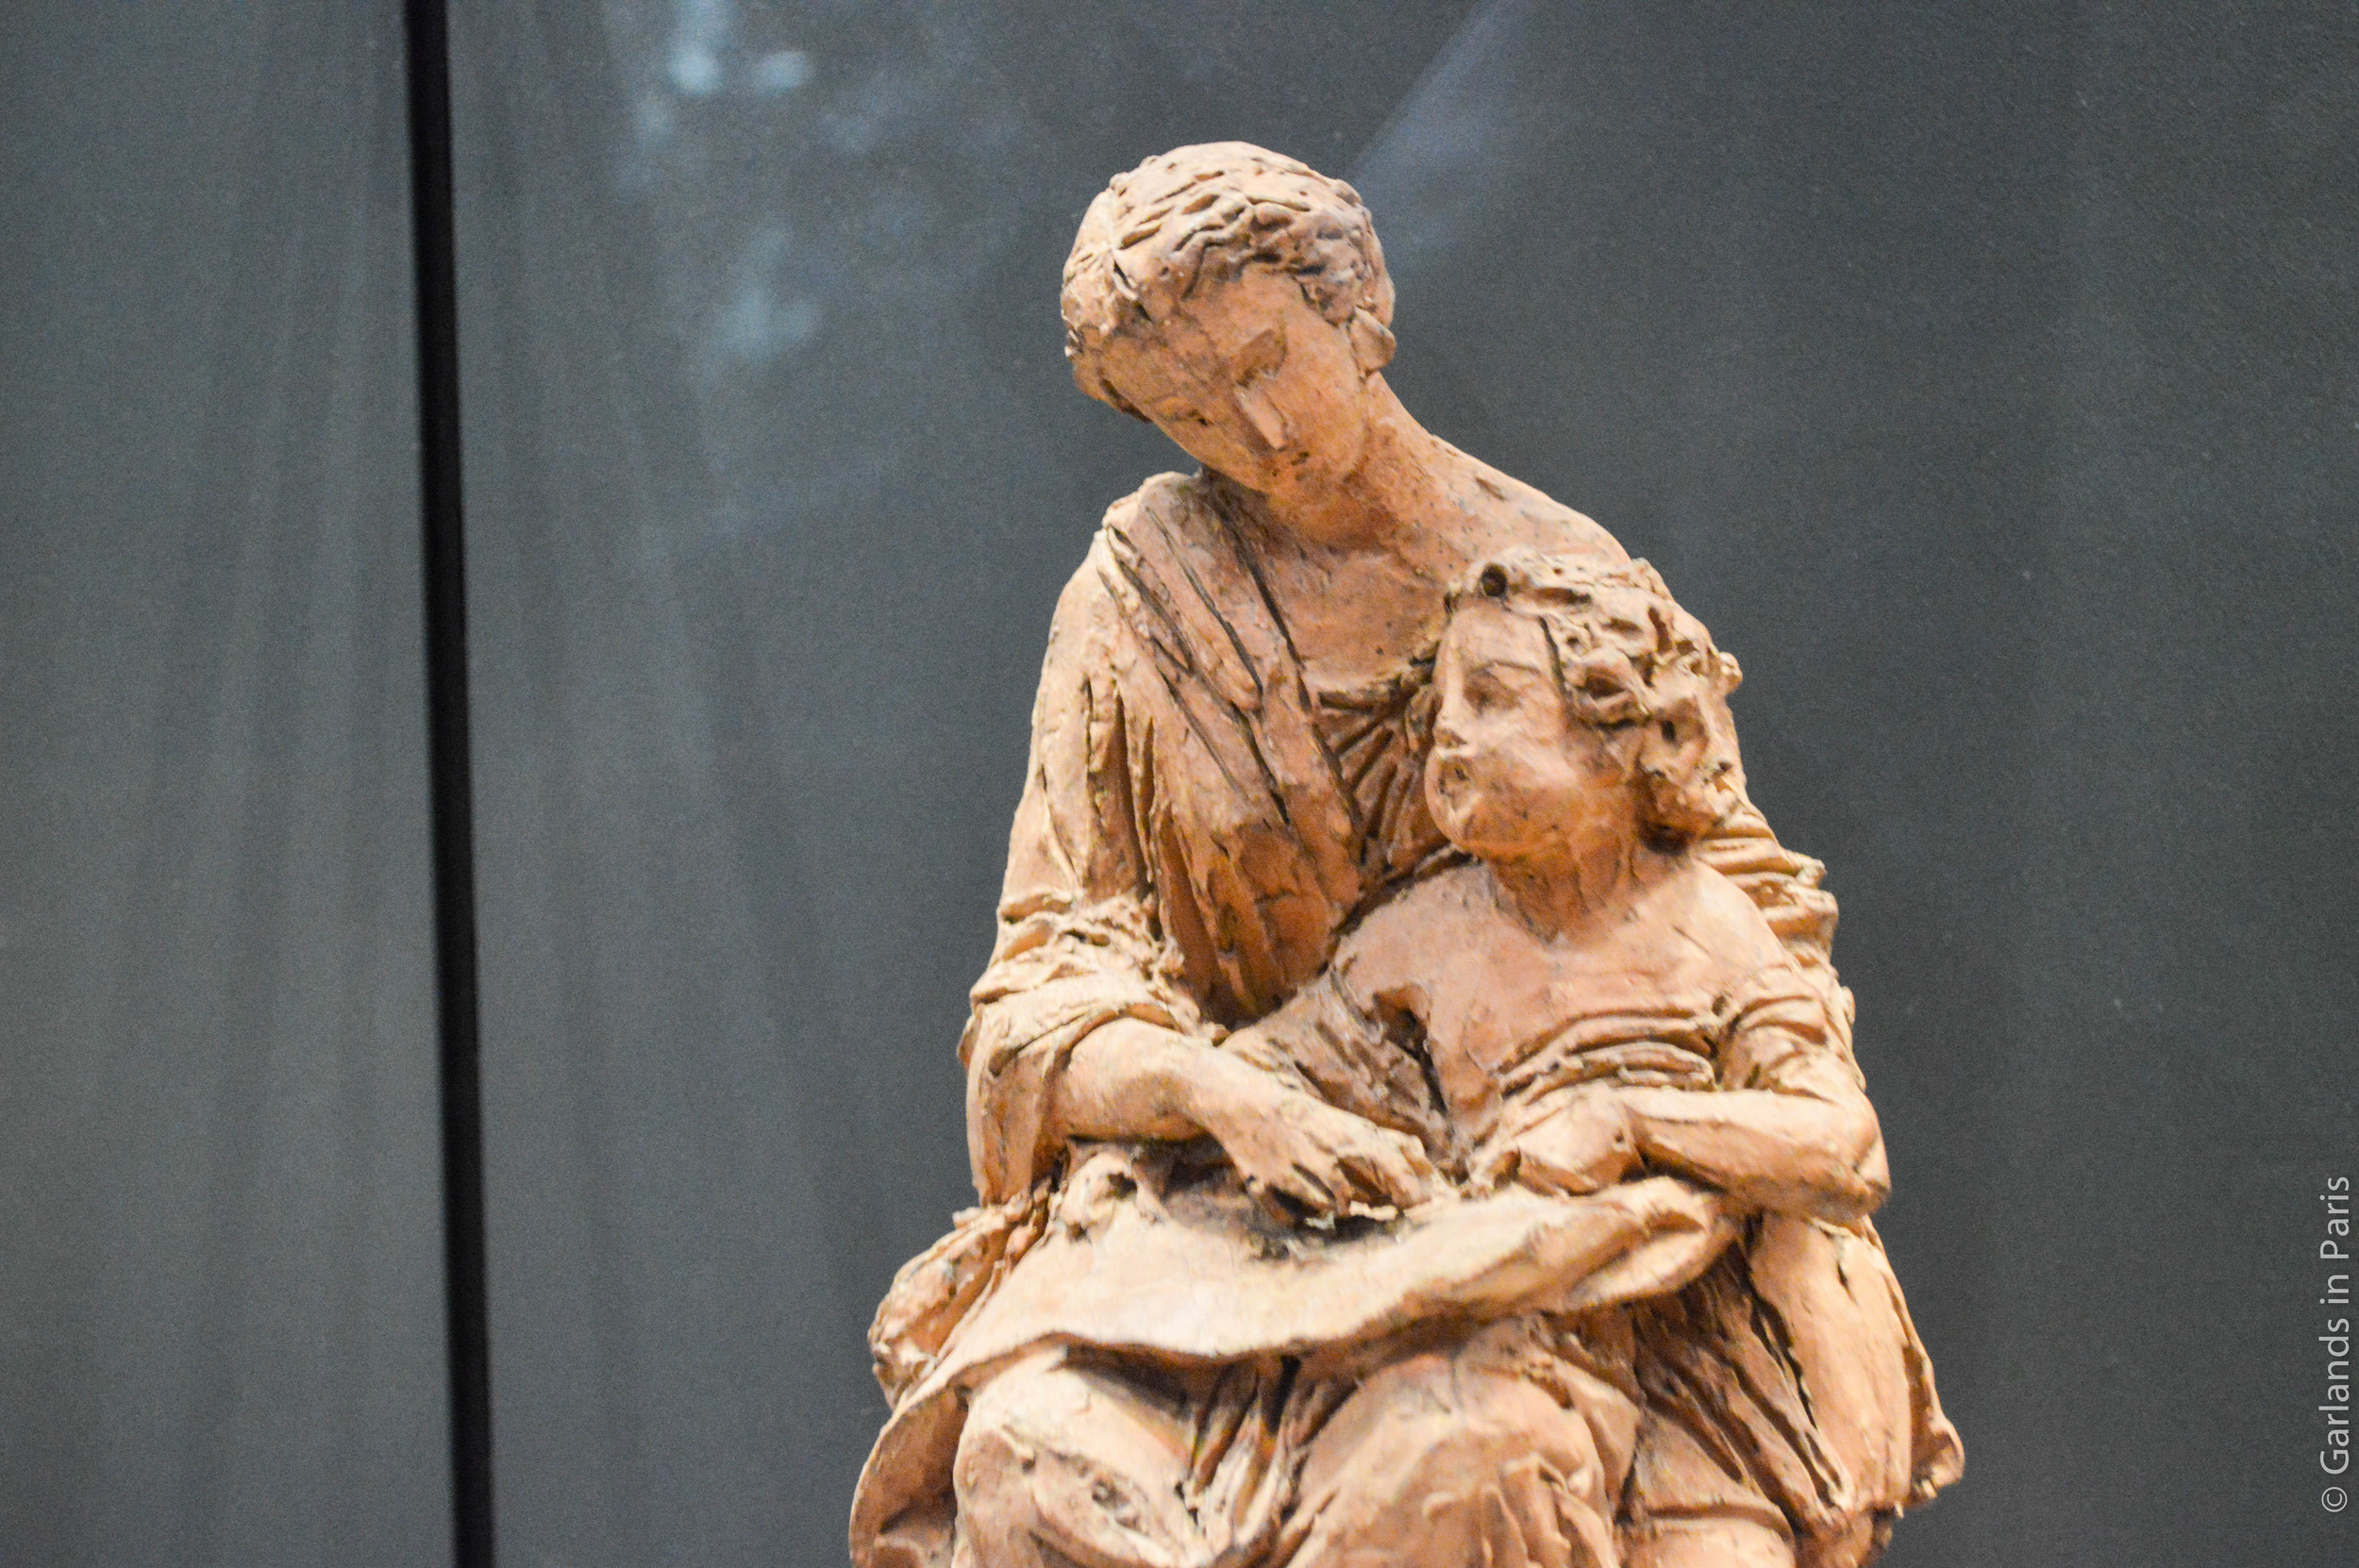 Mother and child, Musée d'Orsay